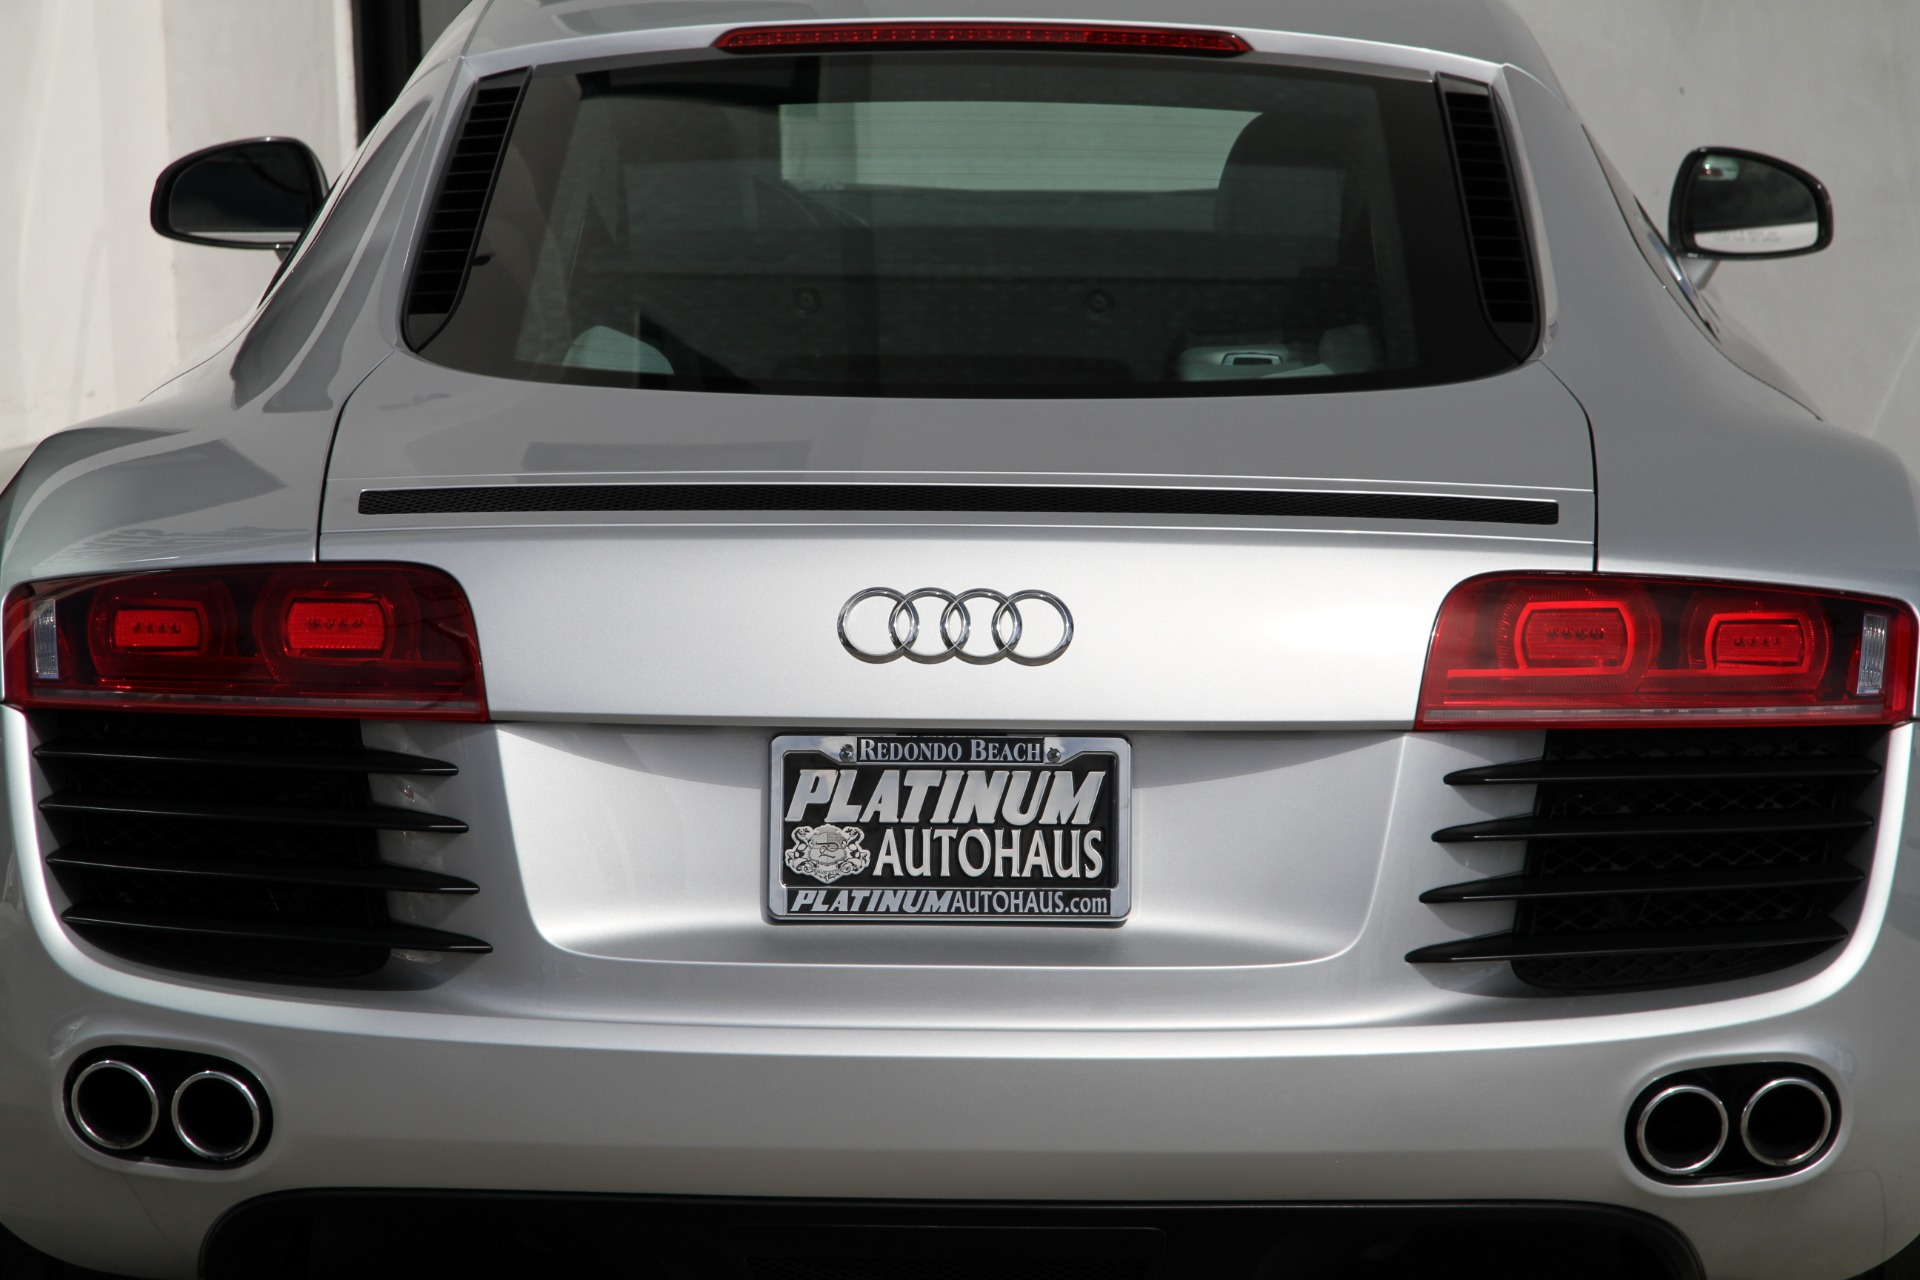 Audi Dealership Near Me >> 2012 Audi R8 4.2 quattro *** RARE MANUAL TRANSMISSION ...